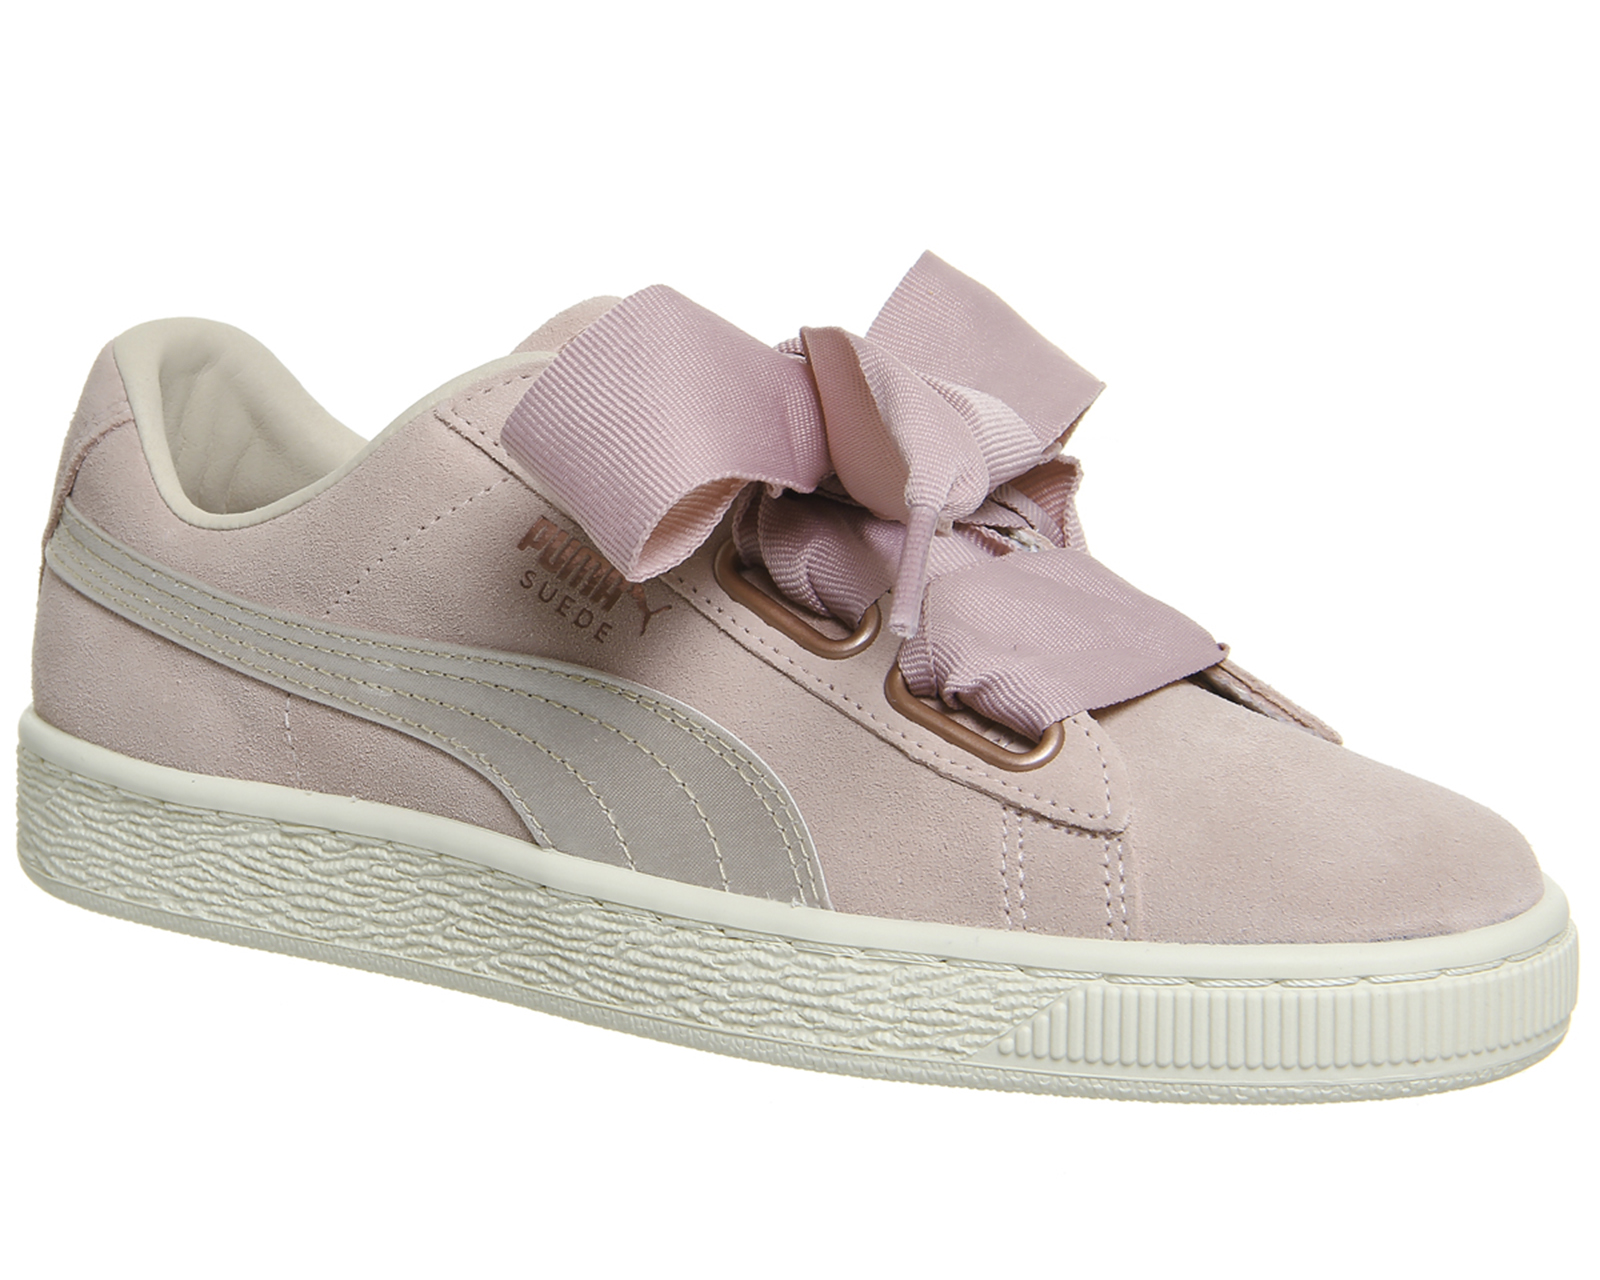 Details about Womens Puma Suede Heart Trainers Silver Pink Tint Rose Gold Trainers Shoes